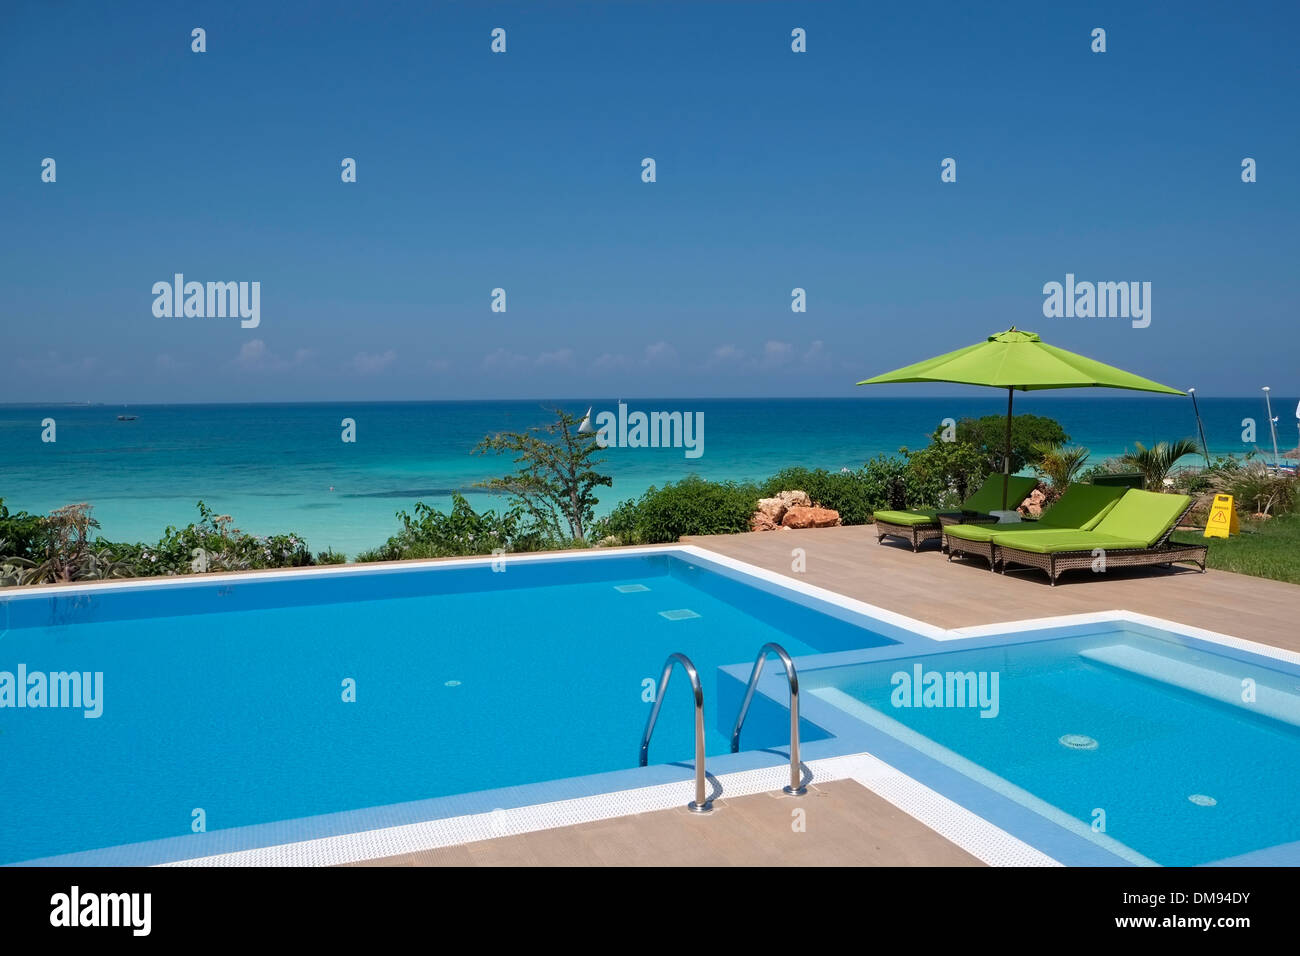 The pool of the Presidential Suite in Hideaway of Nungwi Resort hotel on the north-west coast of Zanzibar island a semi-autonomous part of Tanzania, in East Africa - Stock Image